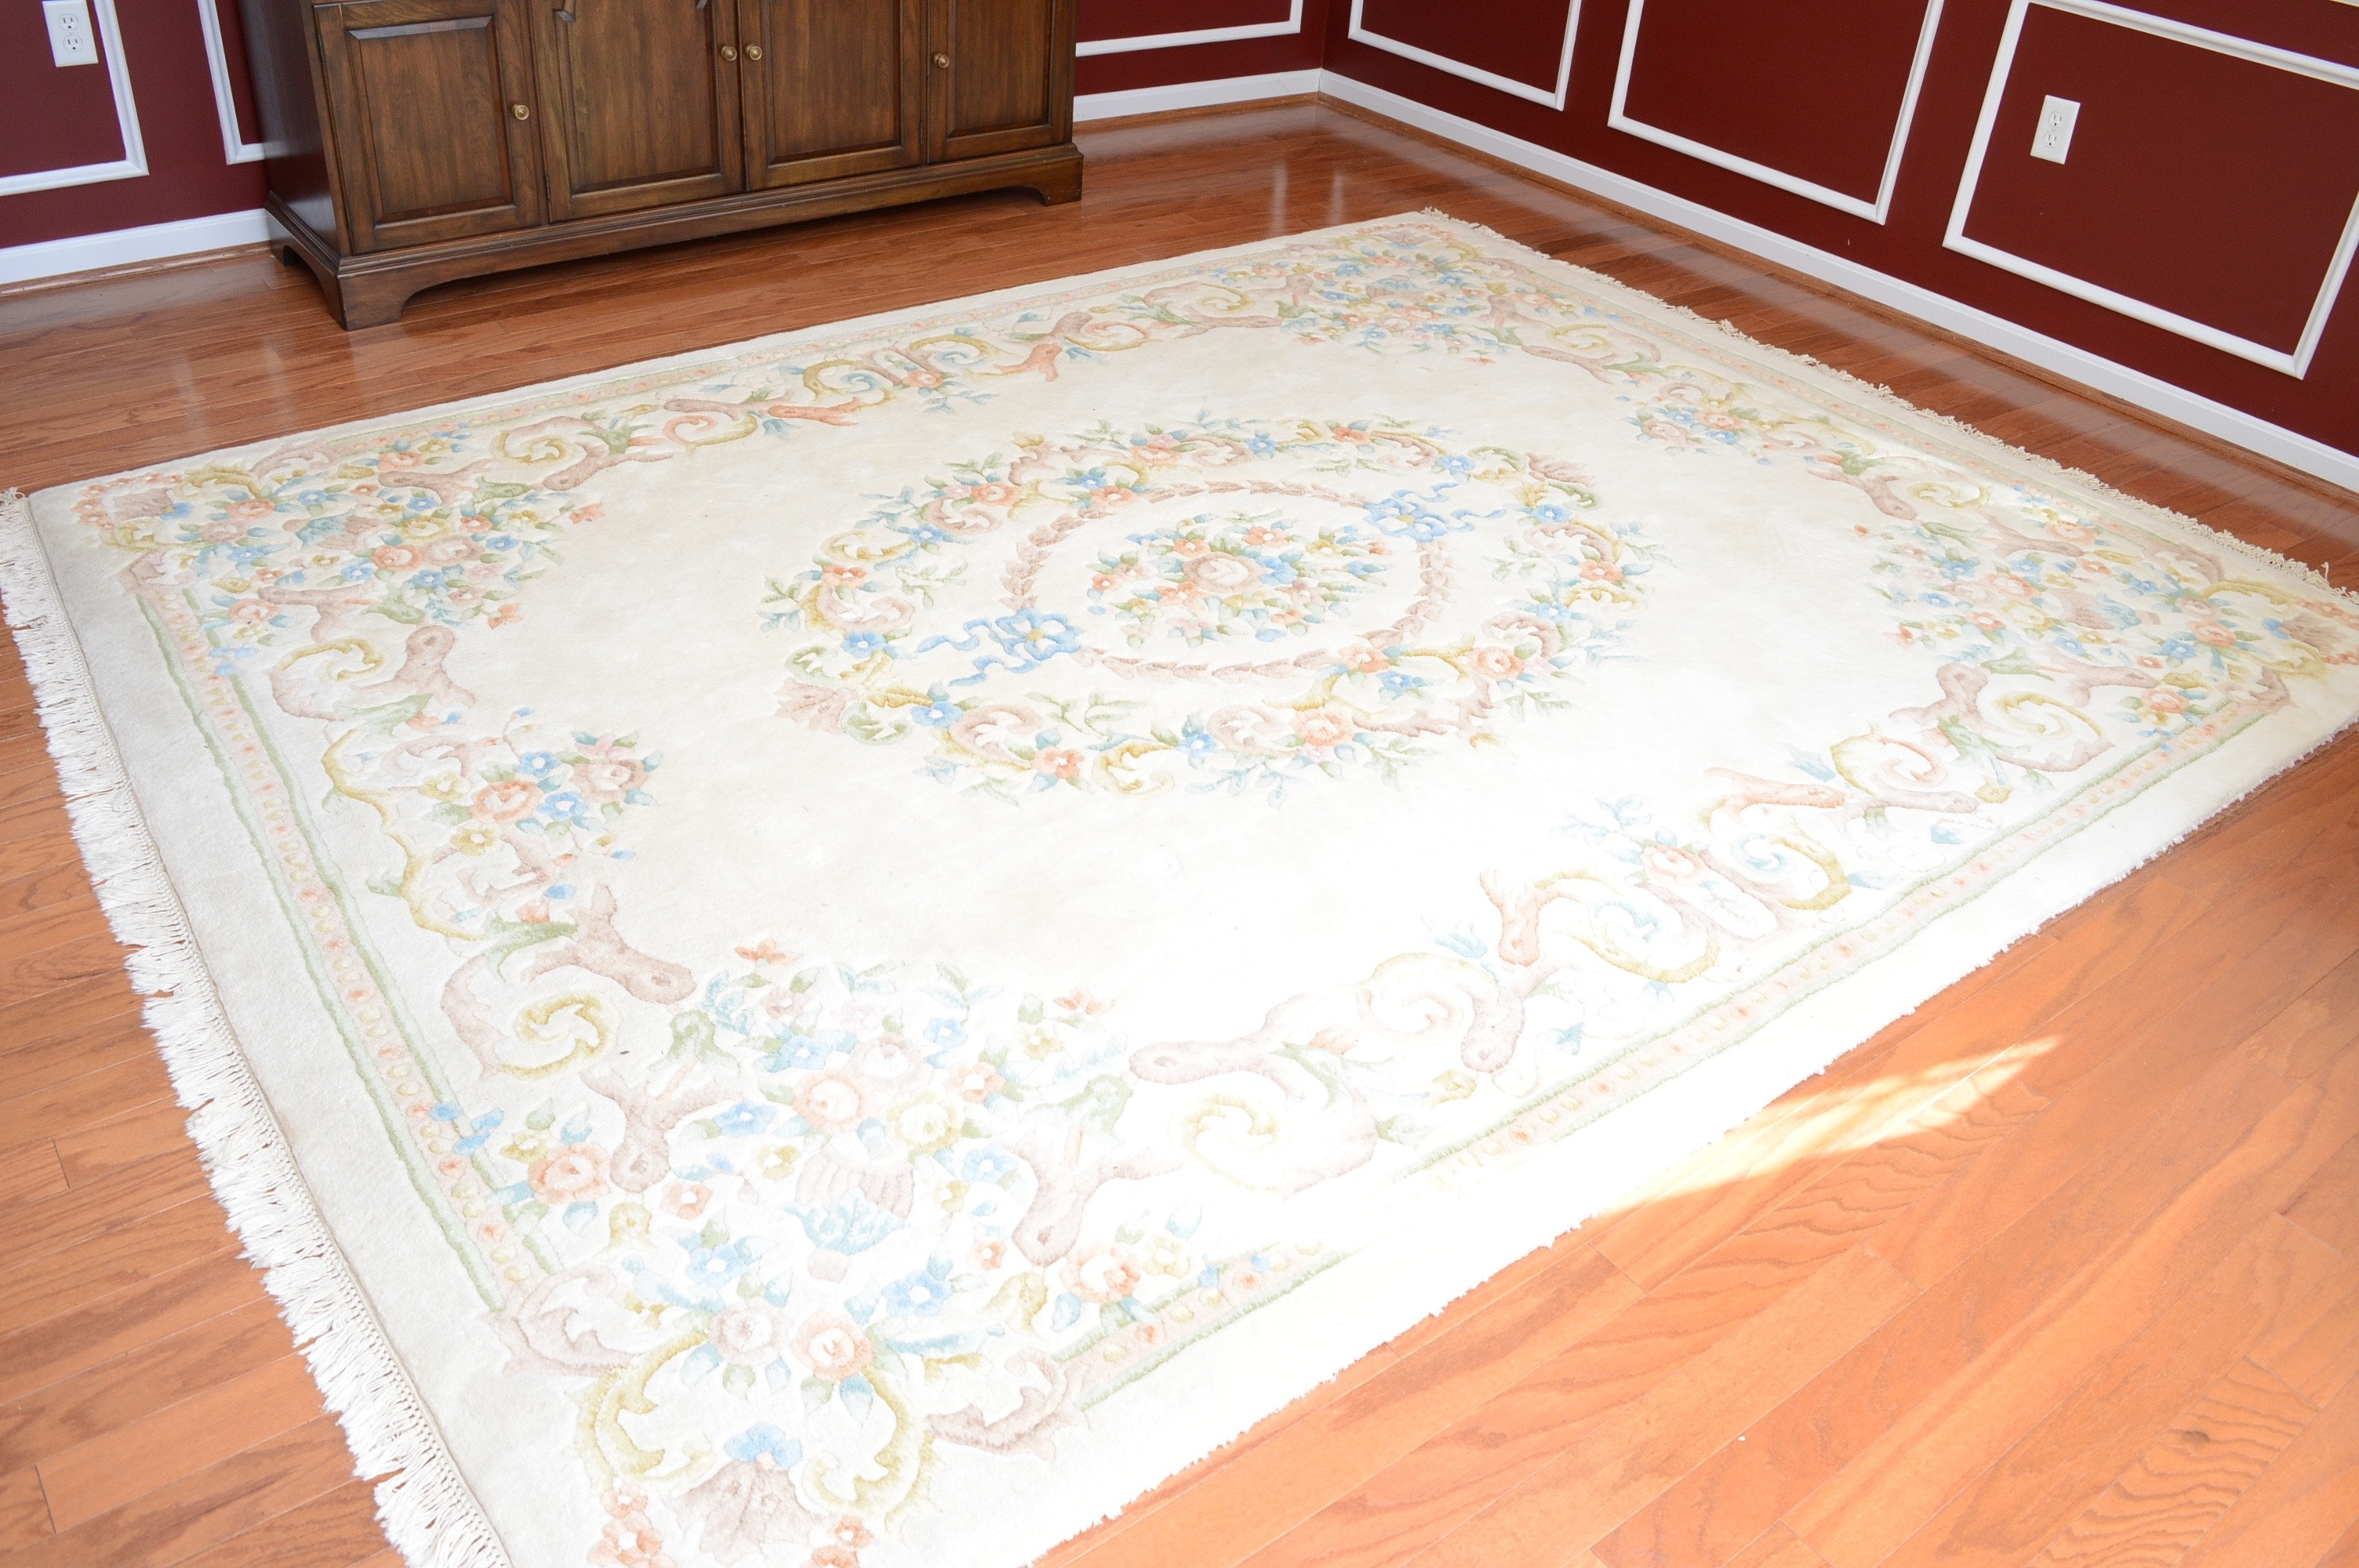 Rug Gallery Hand-Knotted and Carved Indian Wool Area Rug